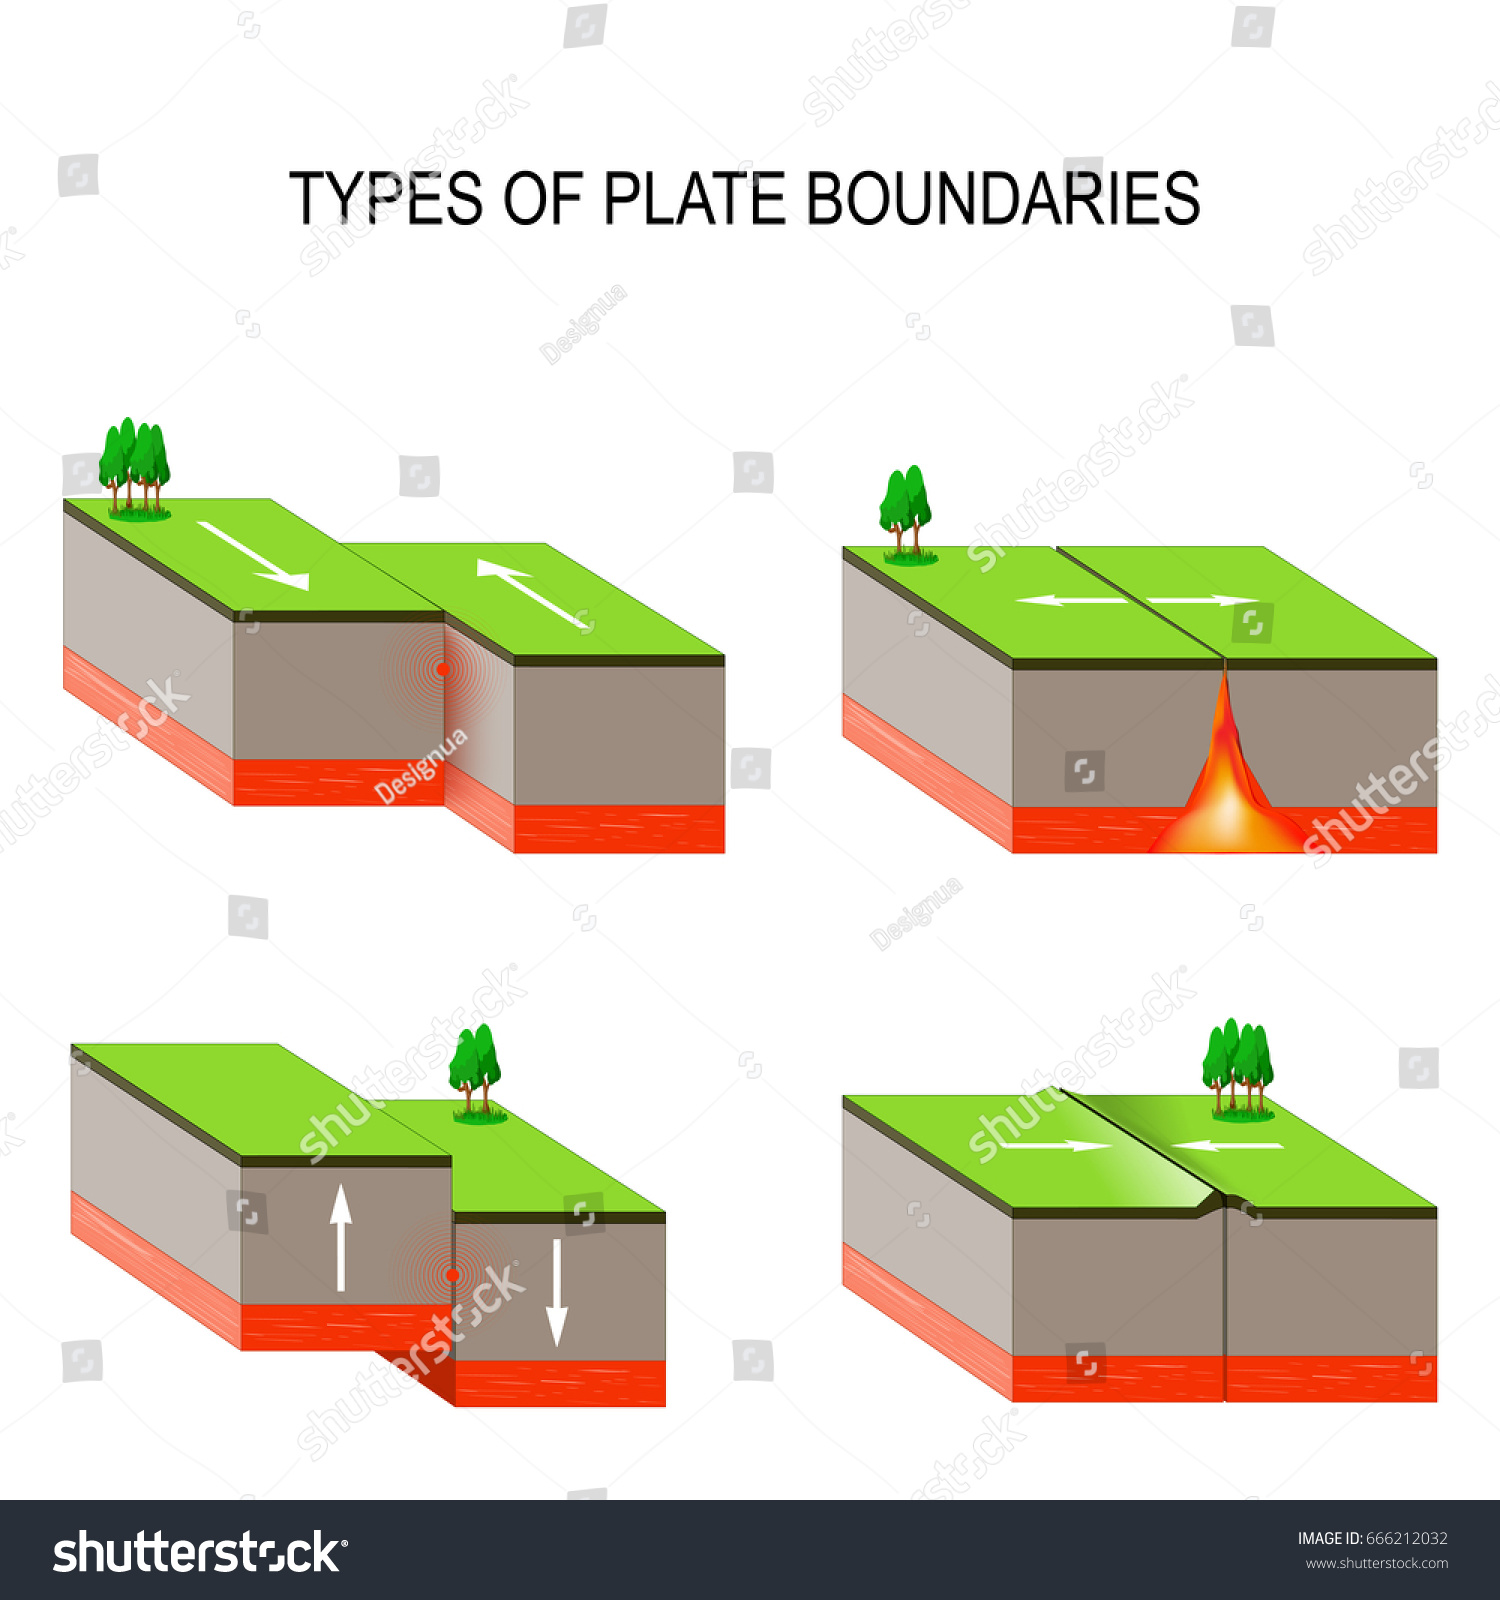 Tectonic plate interactions types plate boundaries stock types of plate boundaries transform boundary occurs where two plates slide pooptronica Image collections